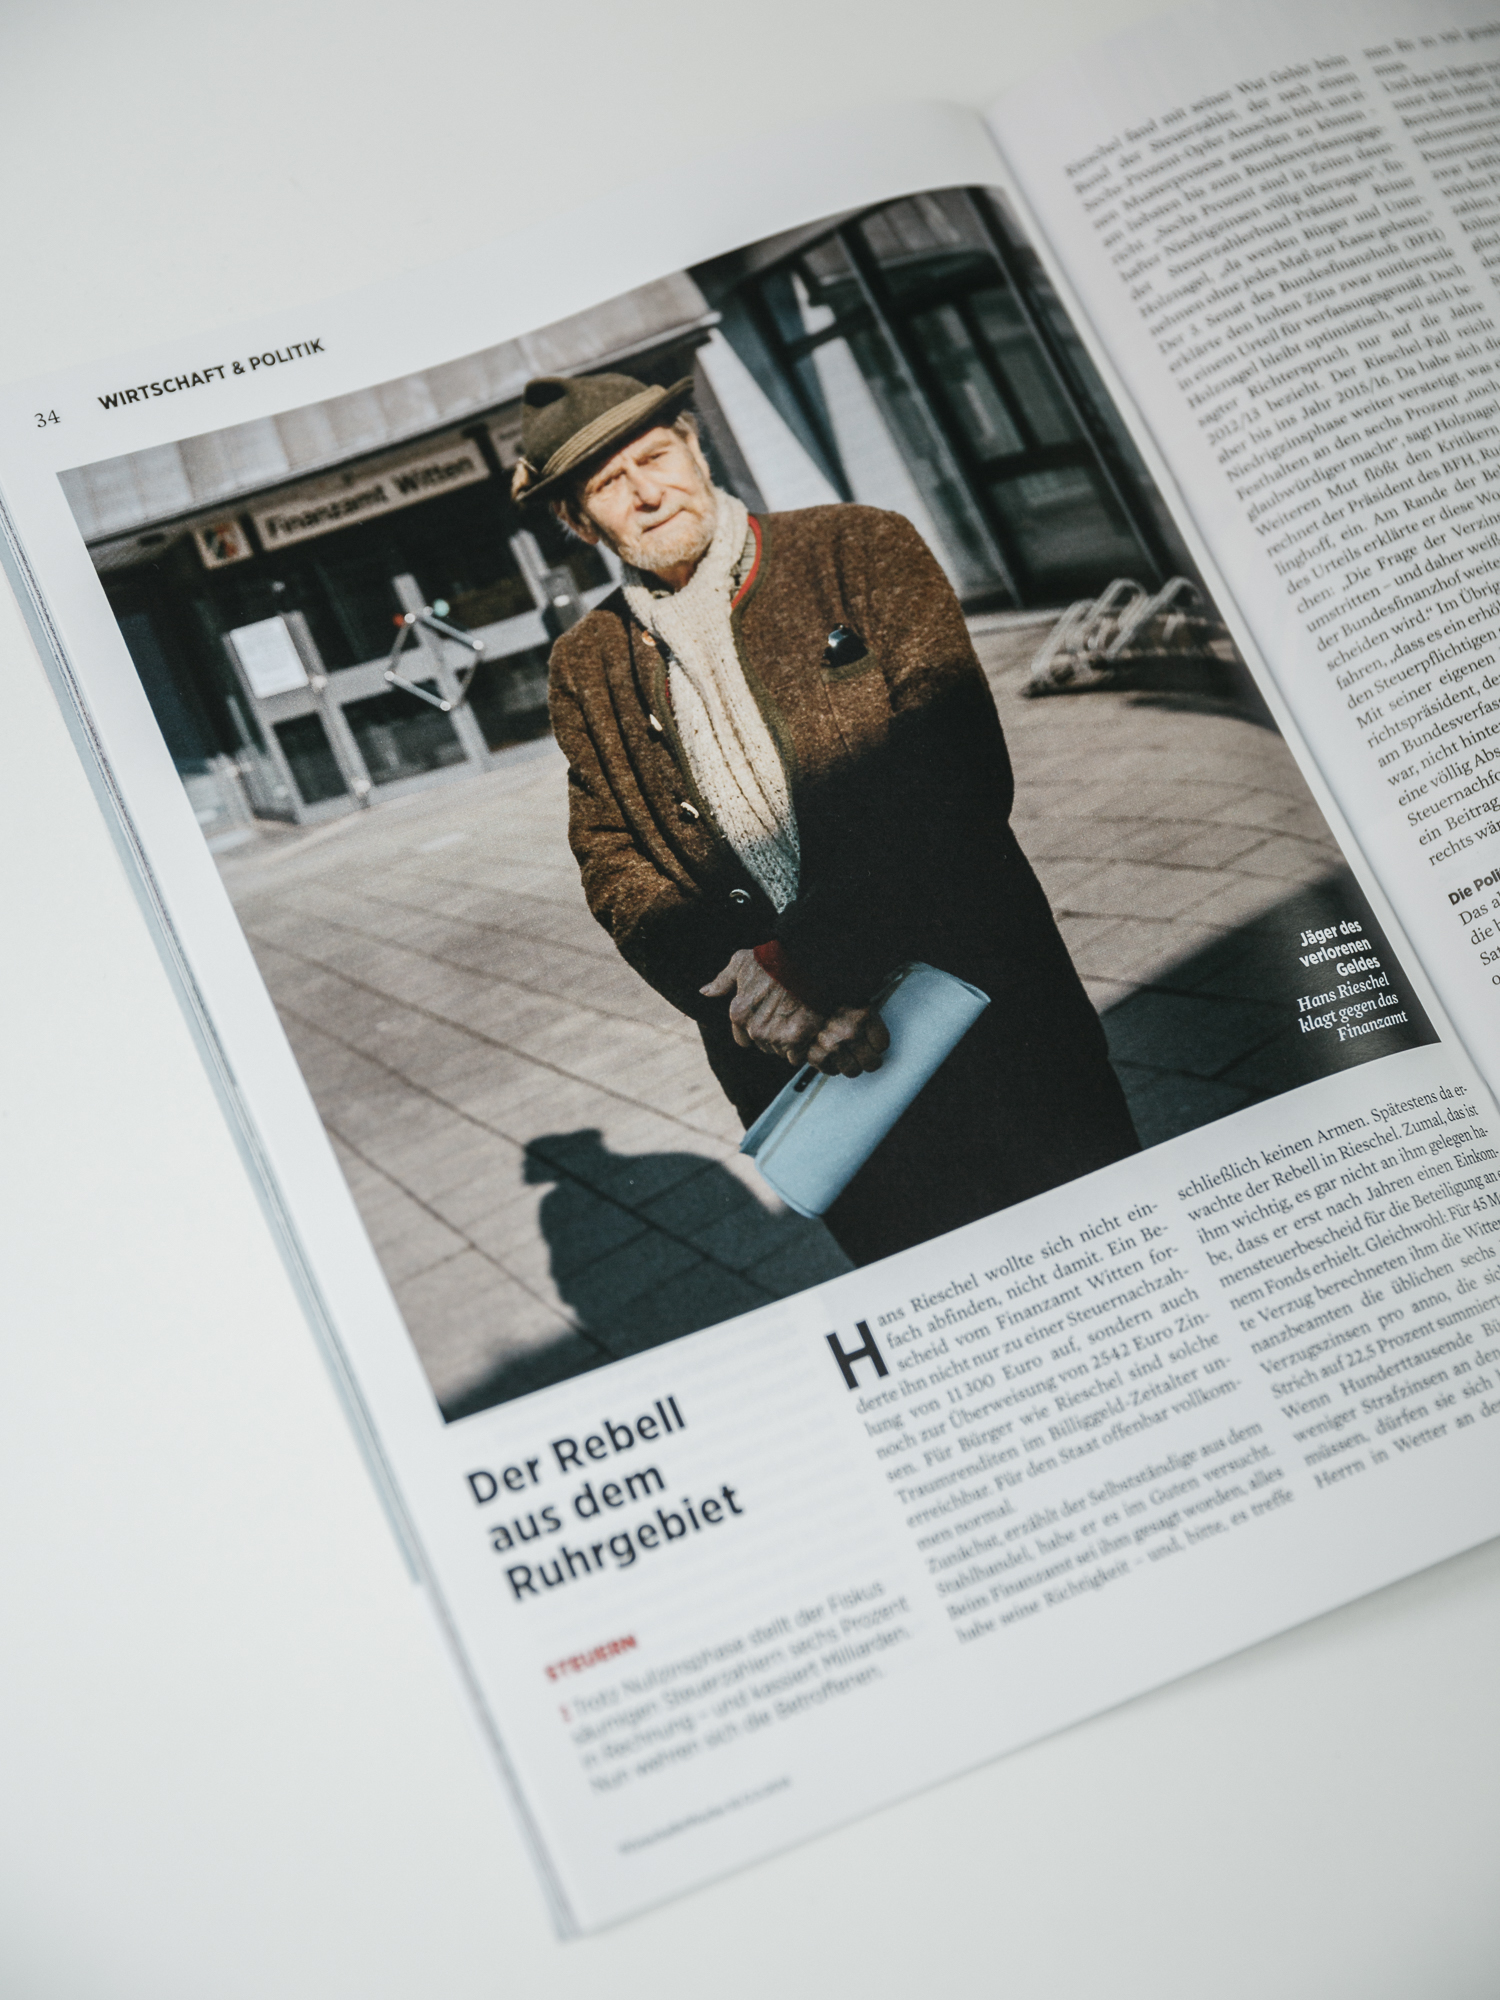 Tearsheet of the new Issue of Wirtschaftswoche p. 34